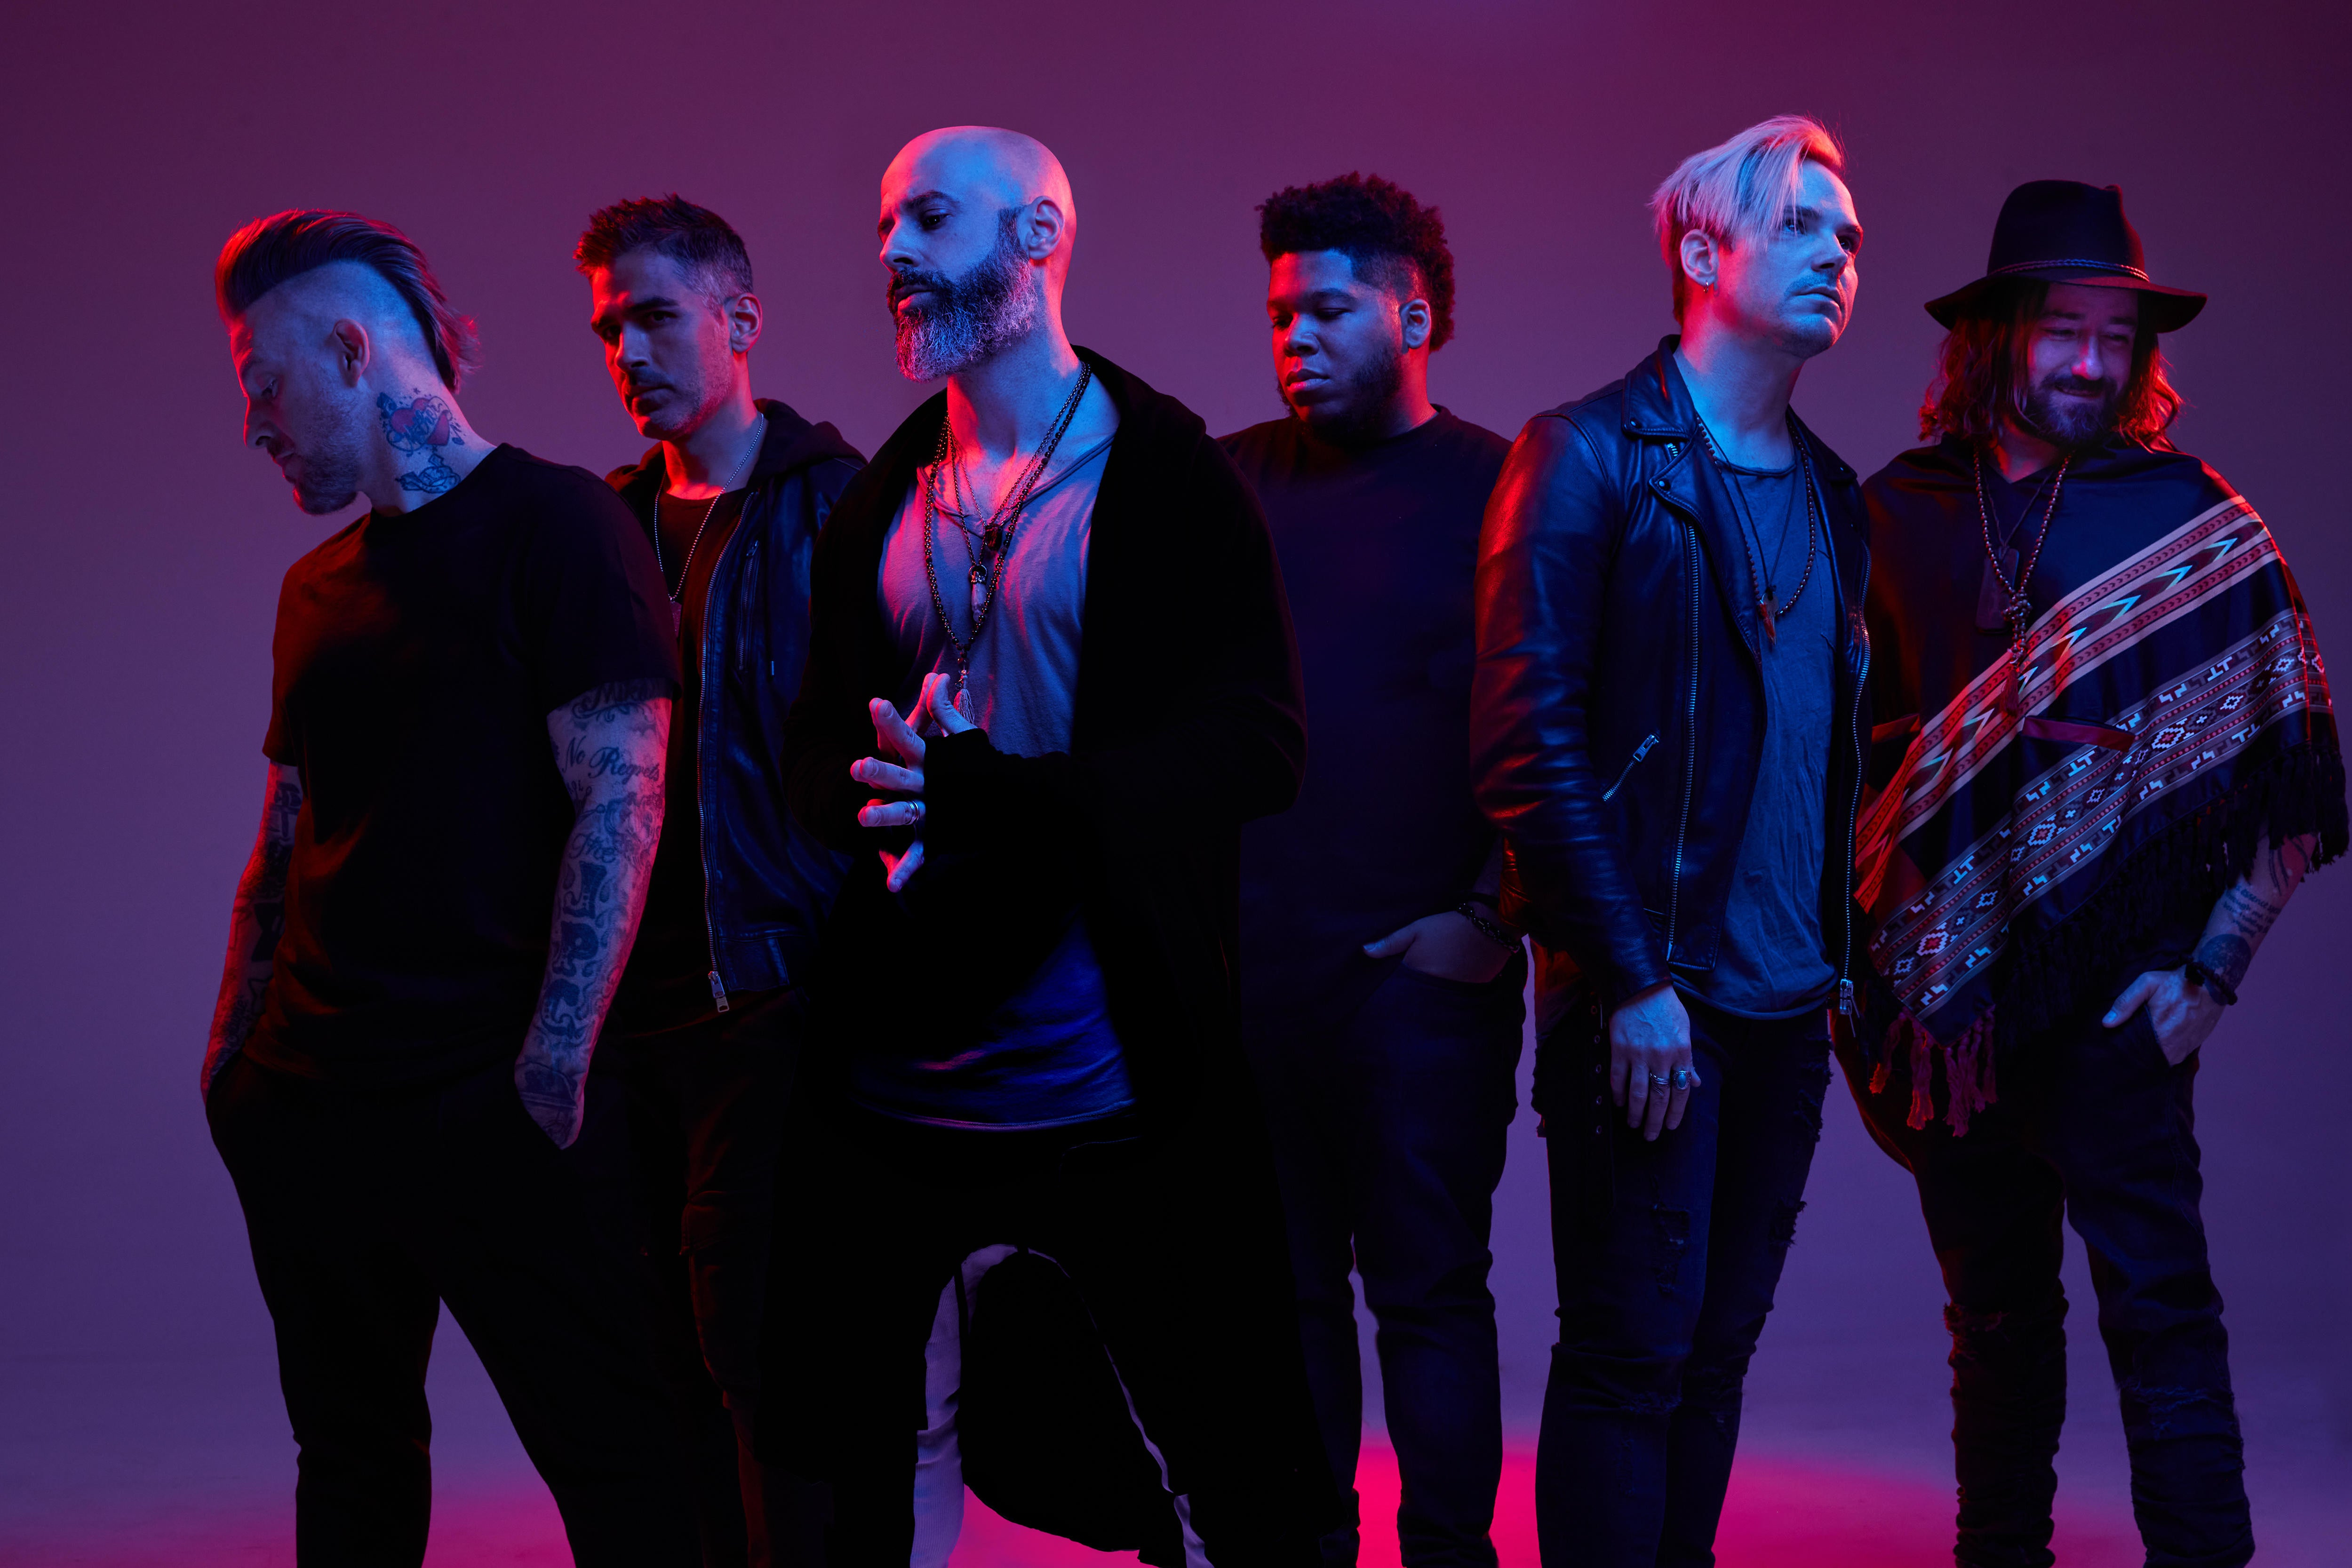 daughtry-main-001-approved.jpg